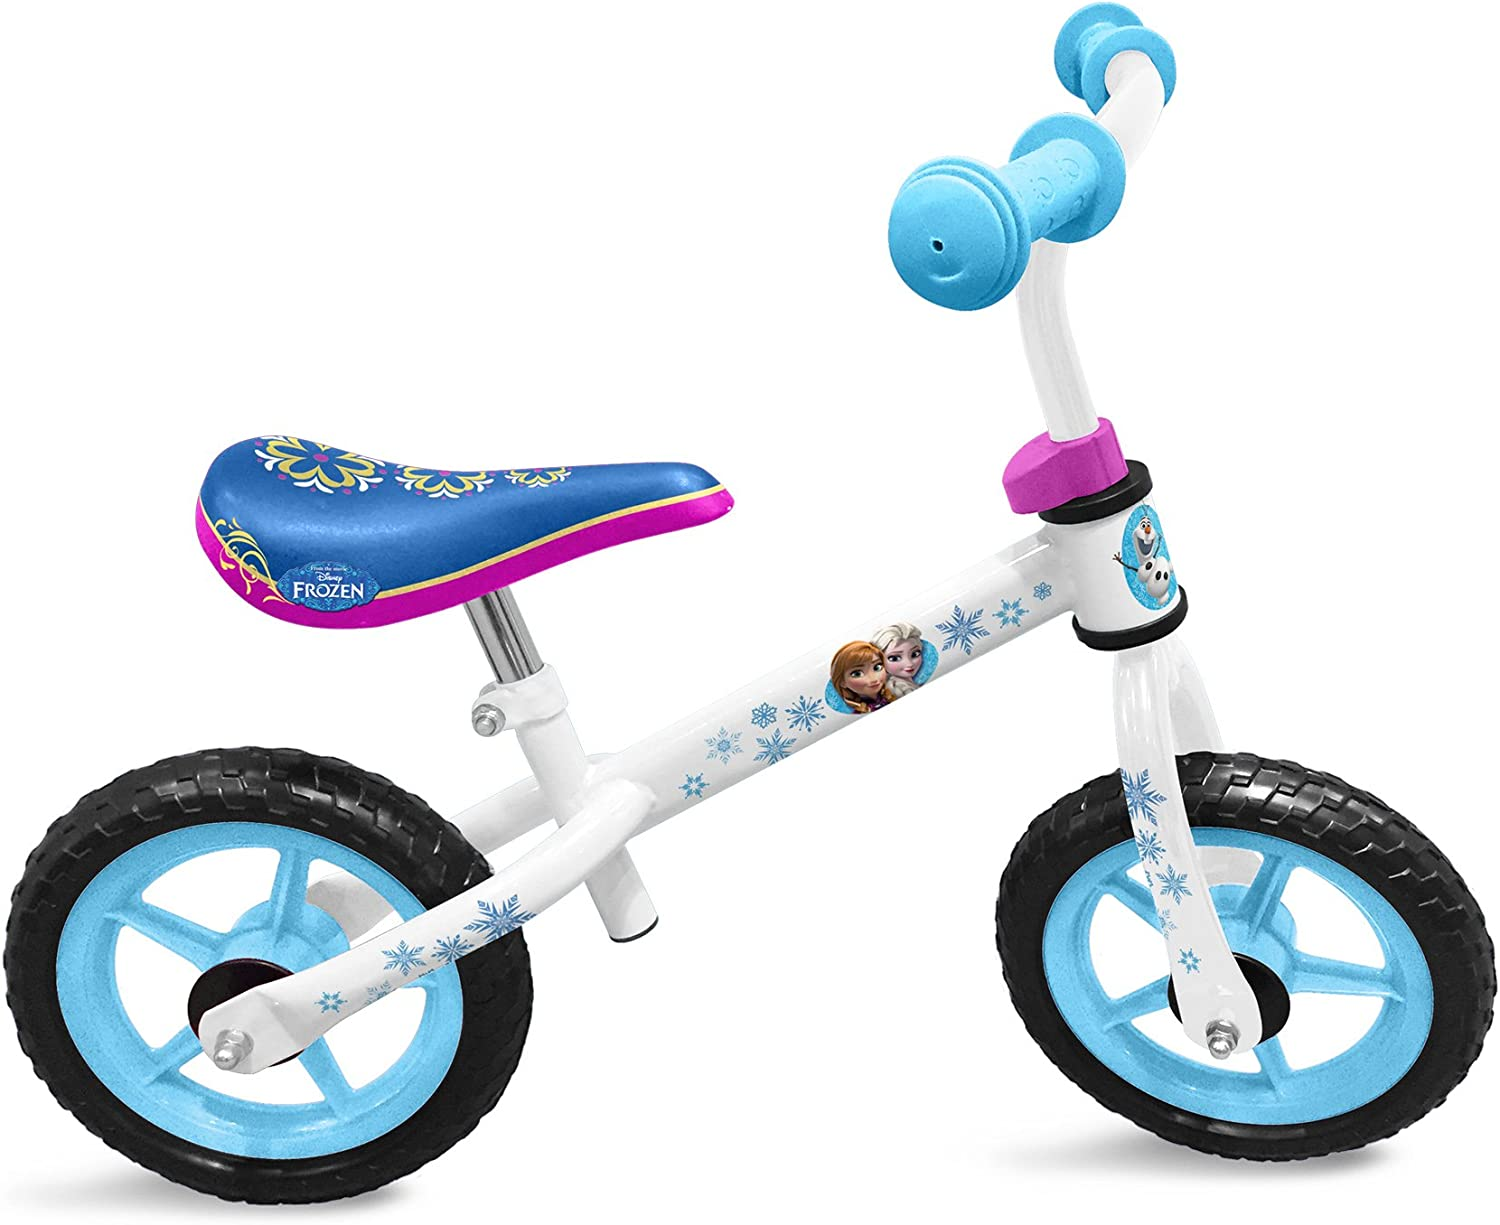 Stamp Frozen Running Bike, Niñas, Multicolored, 2: Amazon.es ...